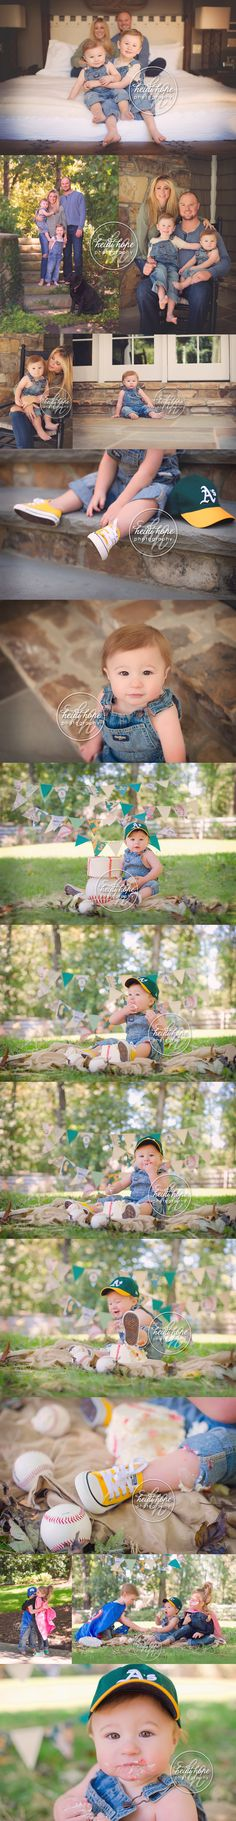 in-home-family-lifestyle-and-first-birthday-session